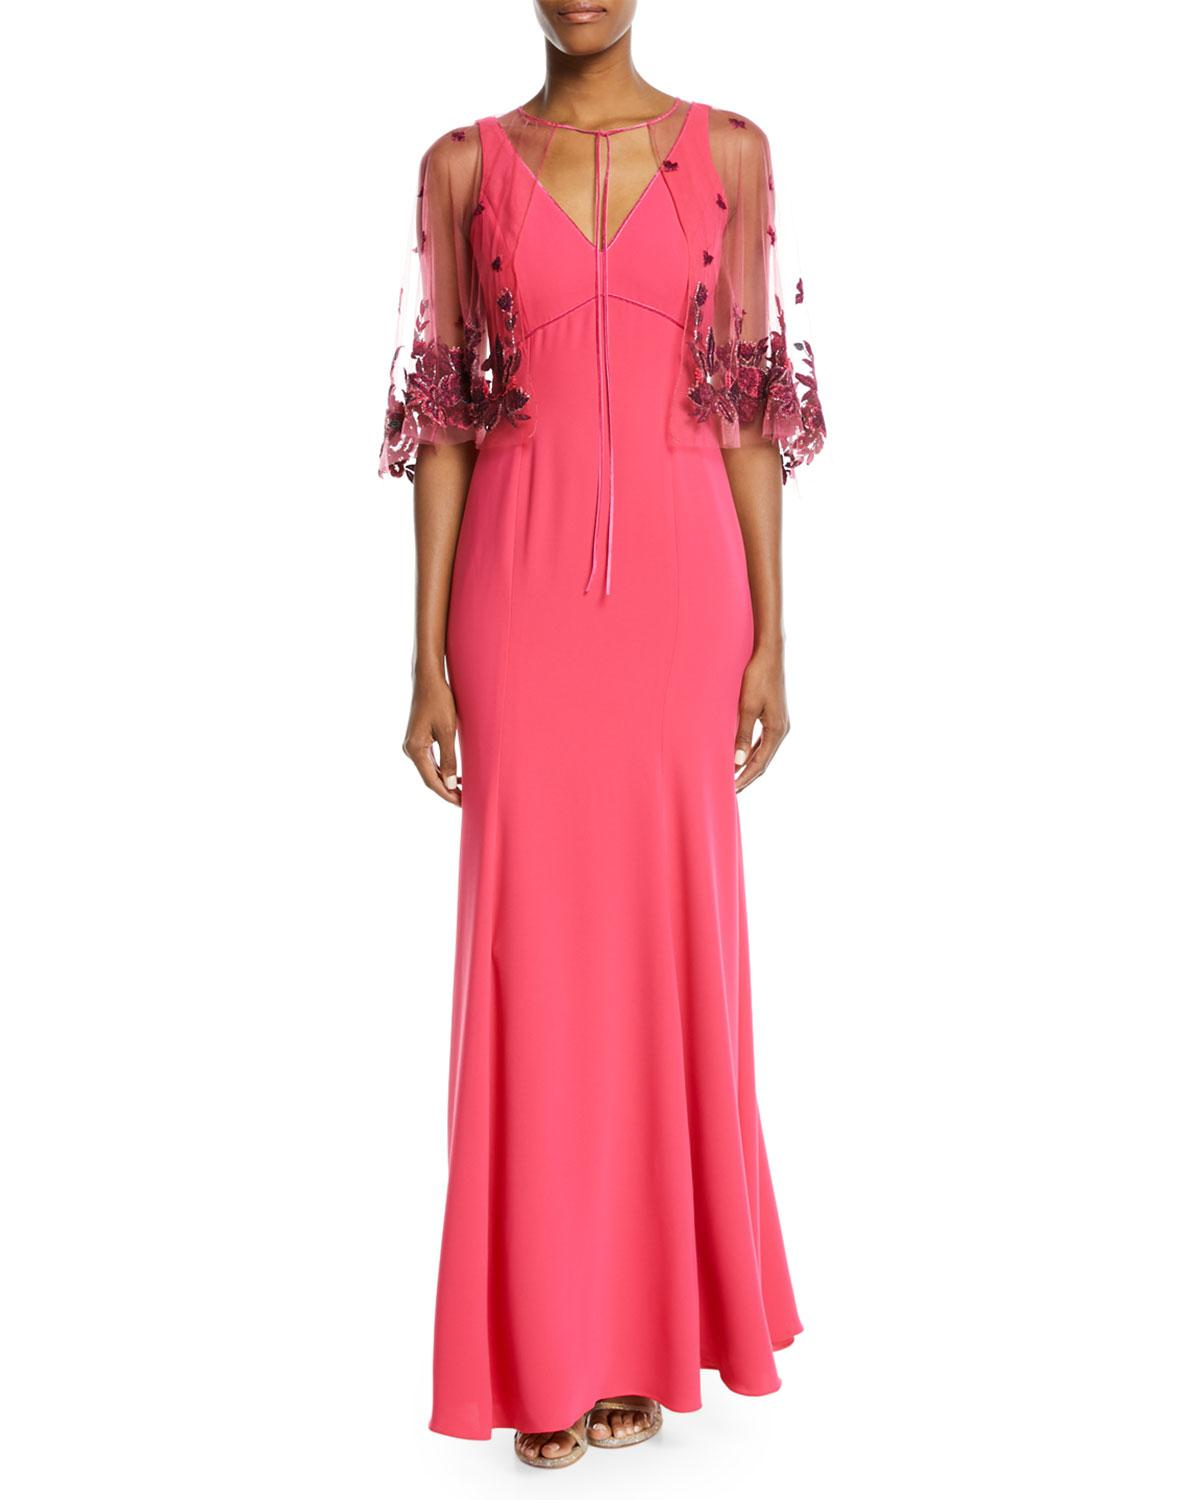 26a2bac6 Lyst - Marchesa Notte V-neck Crepe Gown W/ Beaded Cape in Pink